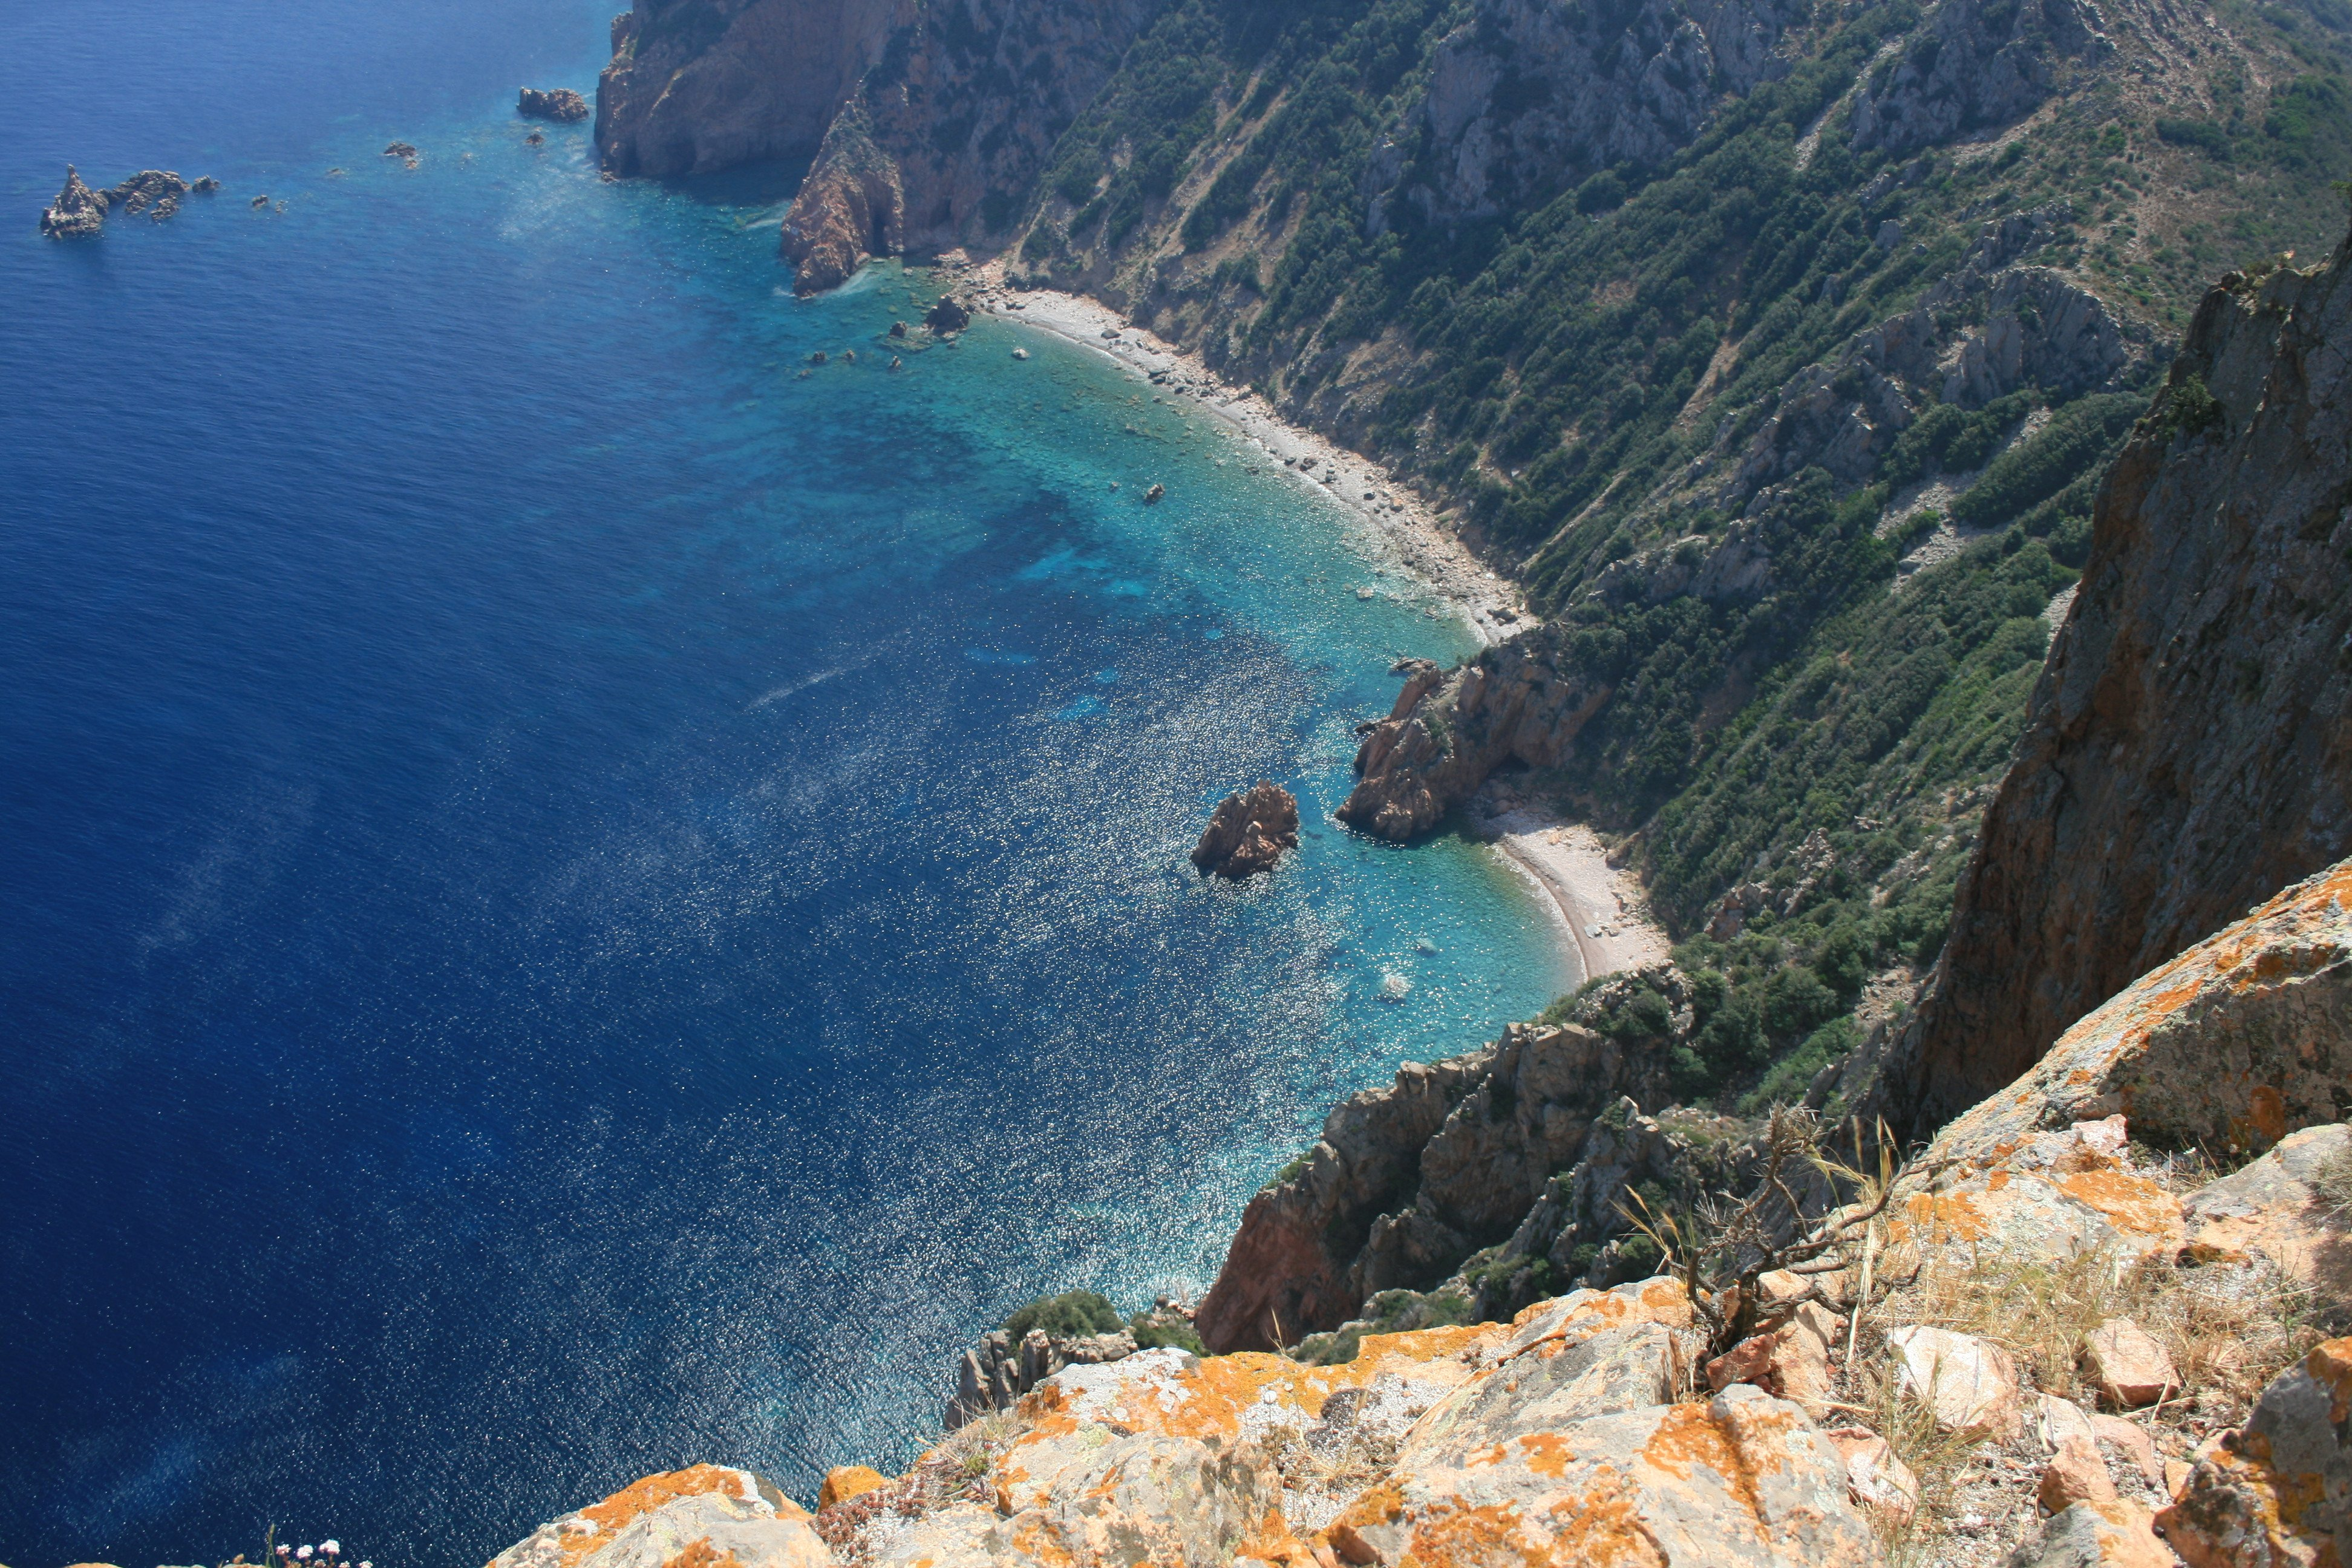 4k Nature Wallpaper Winter France: View From Capo Rosso Corse France 4K Wallpaper